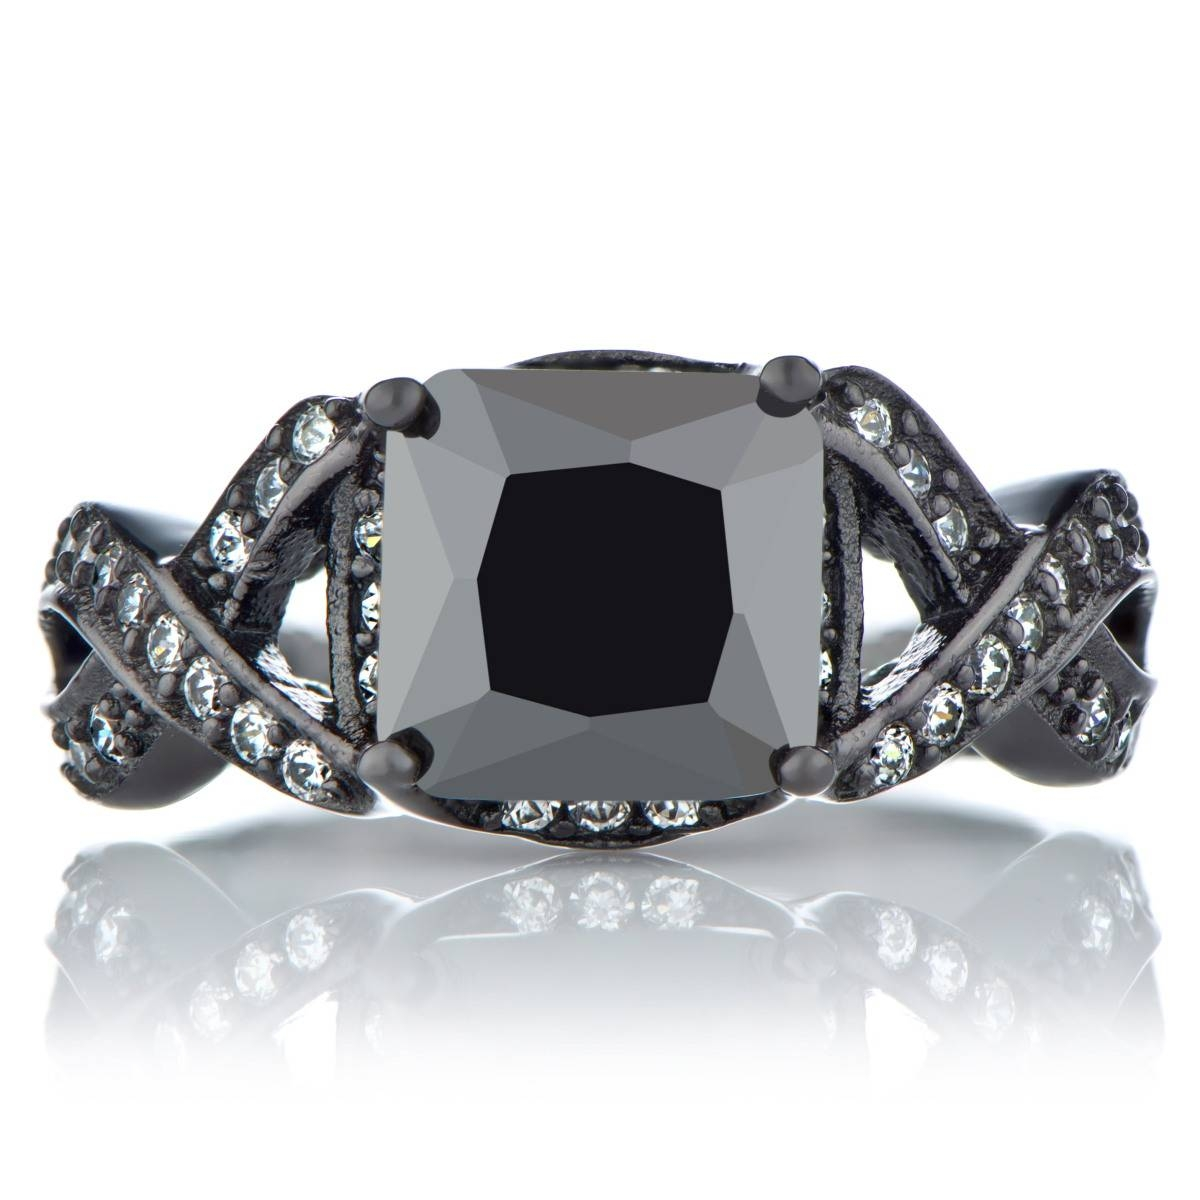 Punk Jewelry | Gothic Jewelry | Punk Engagement Rings Within Gothic Engagement Rings For Women (View 9 of 15)